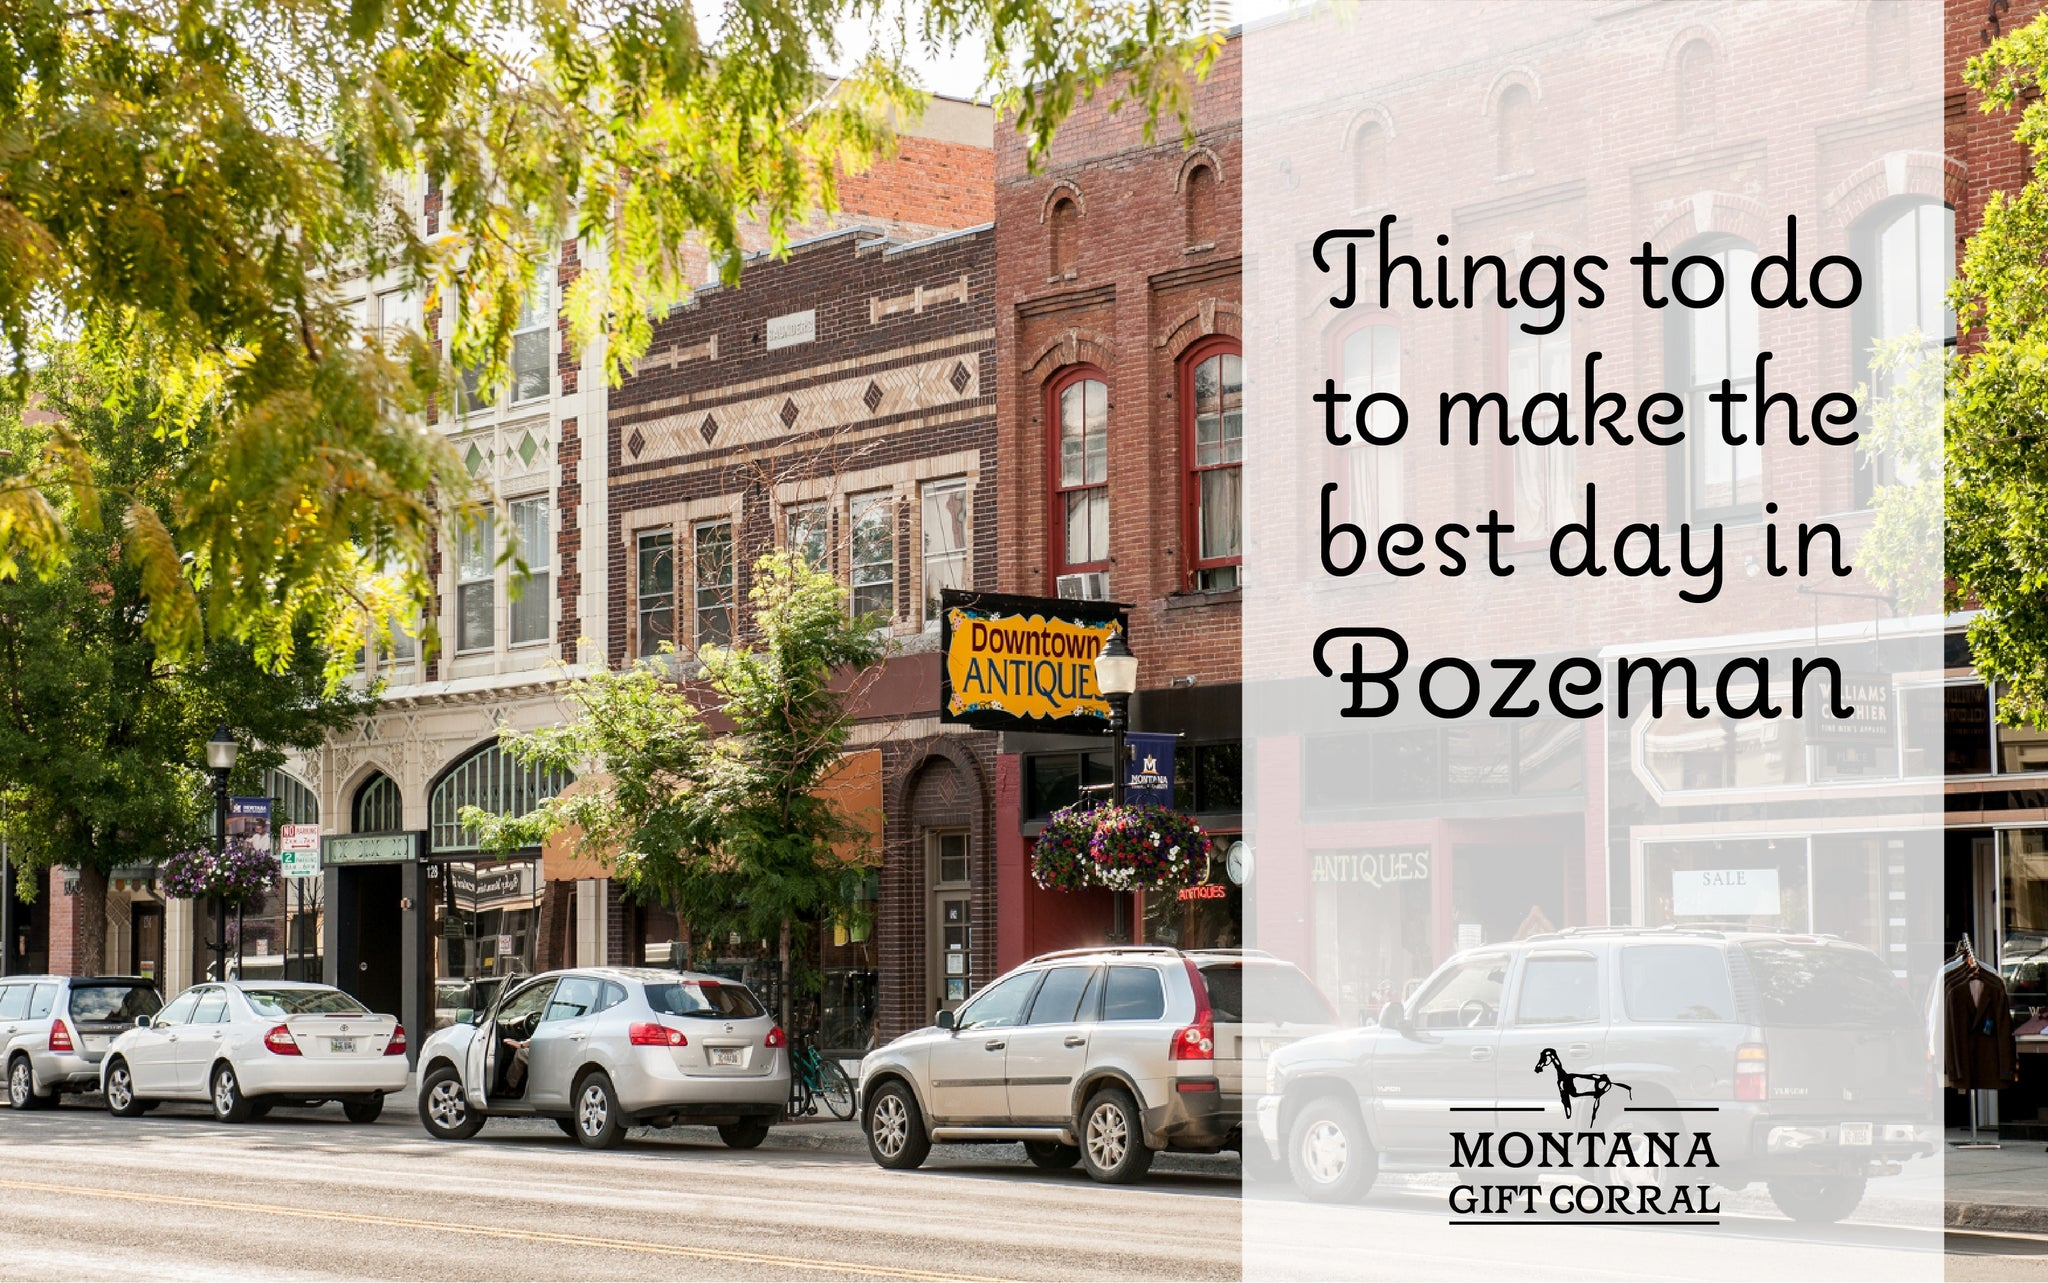 Thins to do to make the best day in Bozeman